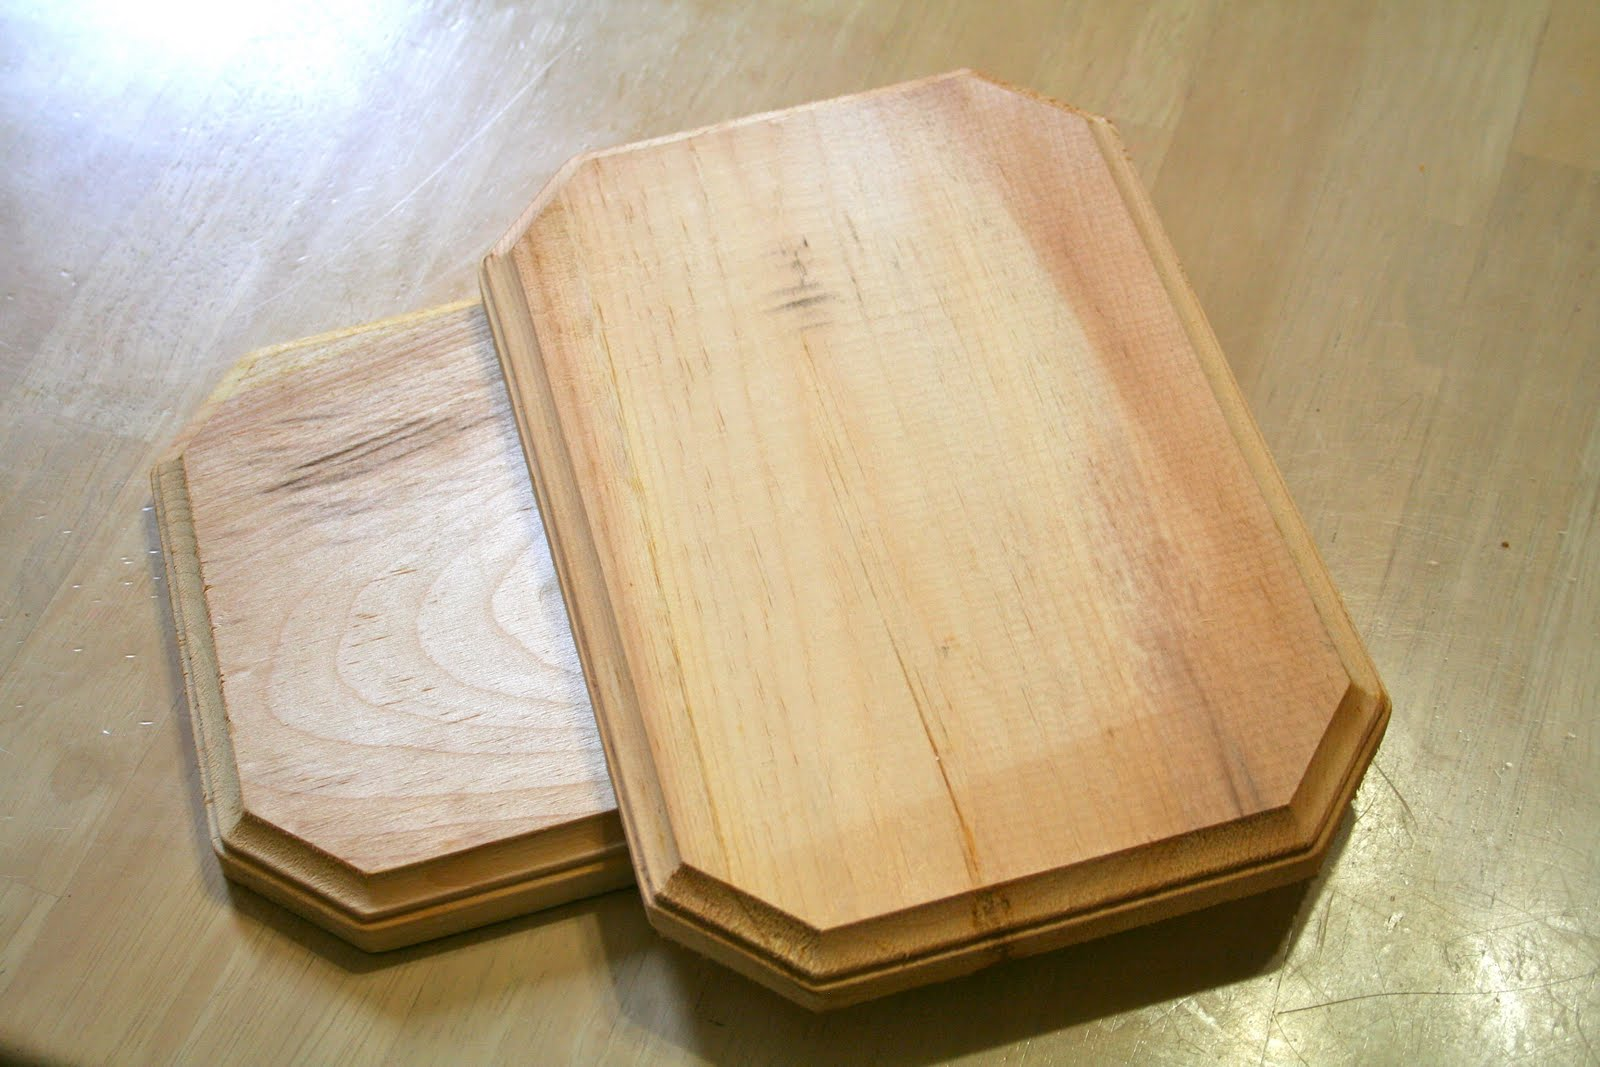 Wooden Plaque Project